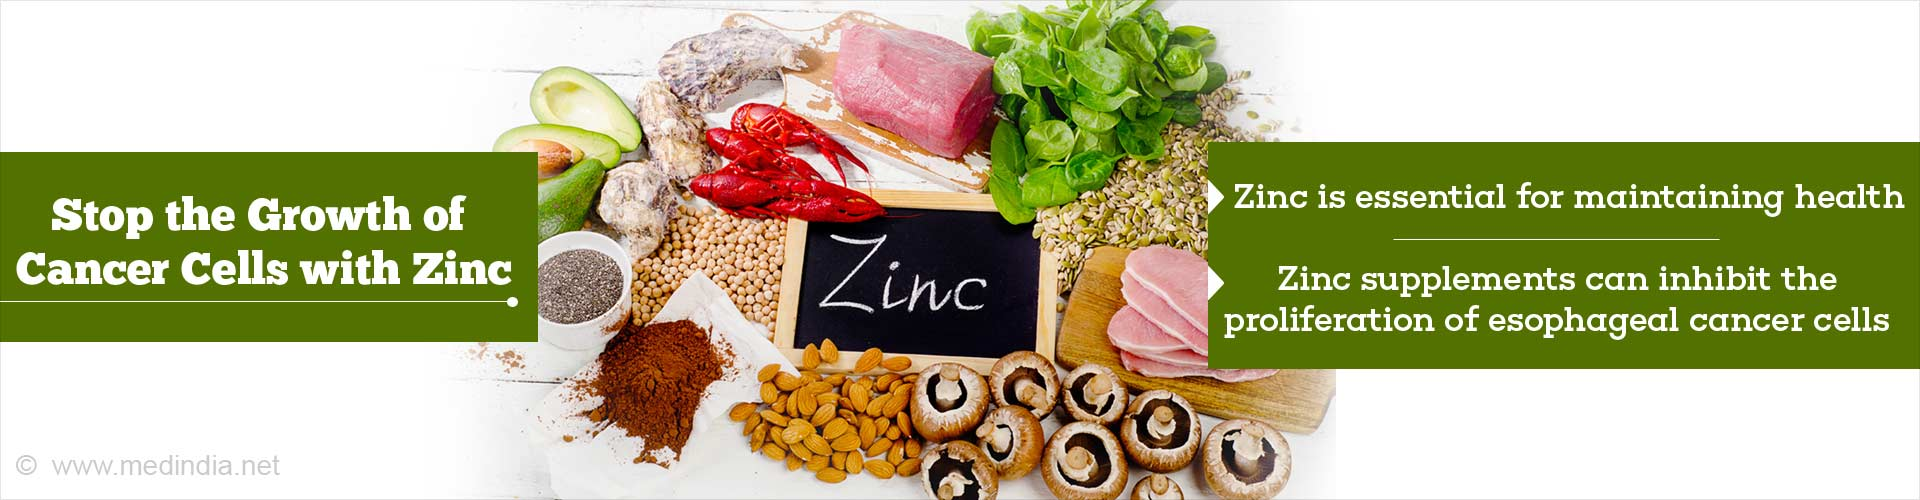 Zinc Can Stop the Growth of Cancer Cells